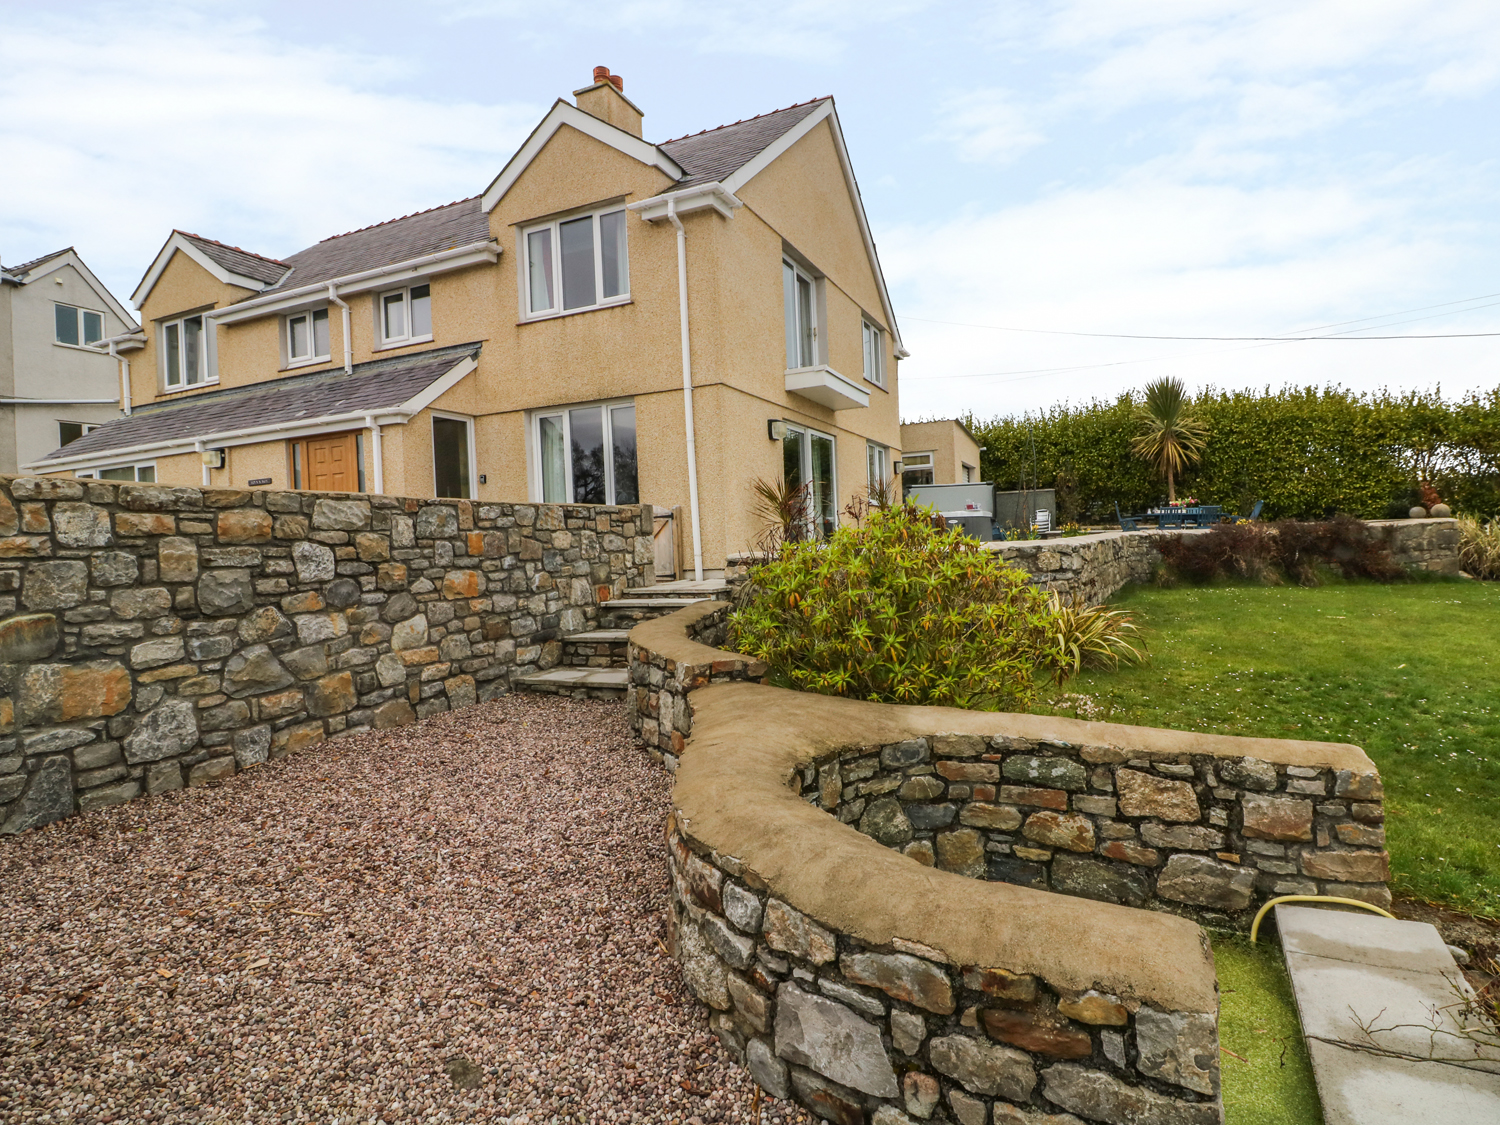 6 bedroom Cottage for rent in Benllech